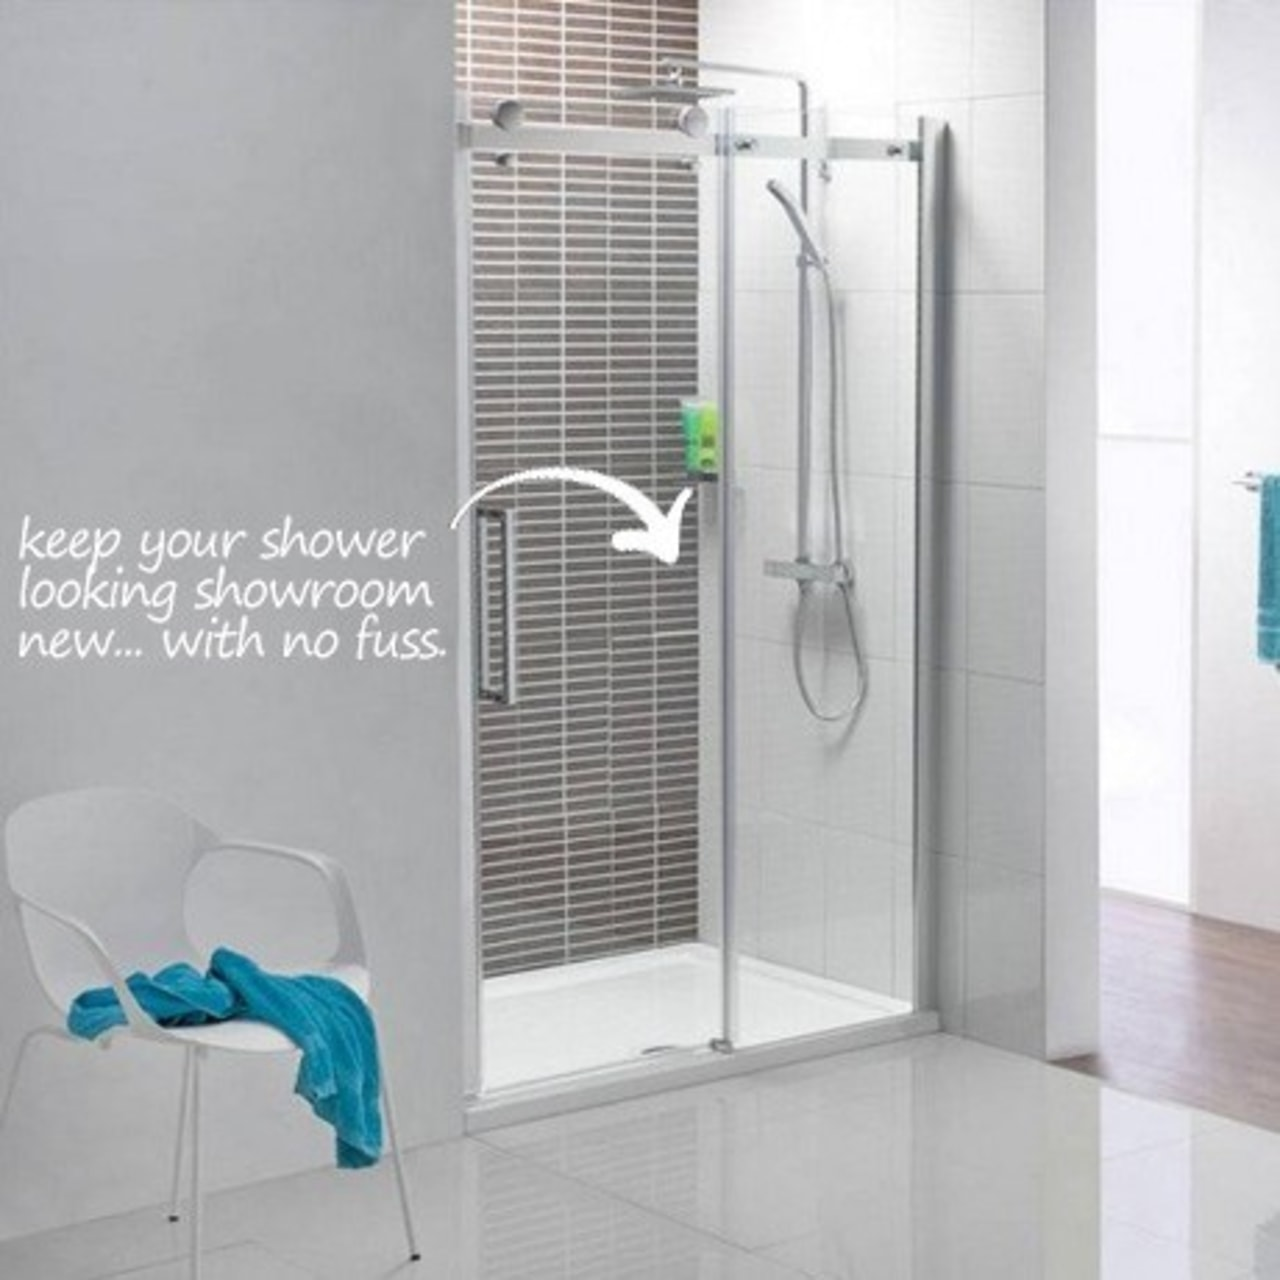 Diamond Fusion easyCLEAN glass protection makes your shower angle, bathroom, glass, plumbing fixture, product, shower, gray